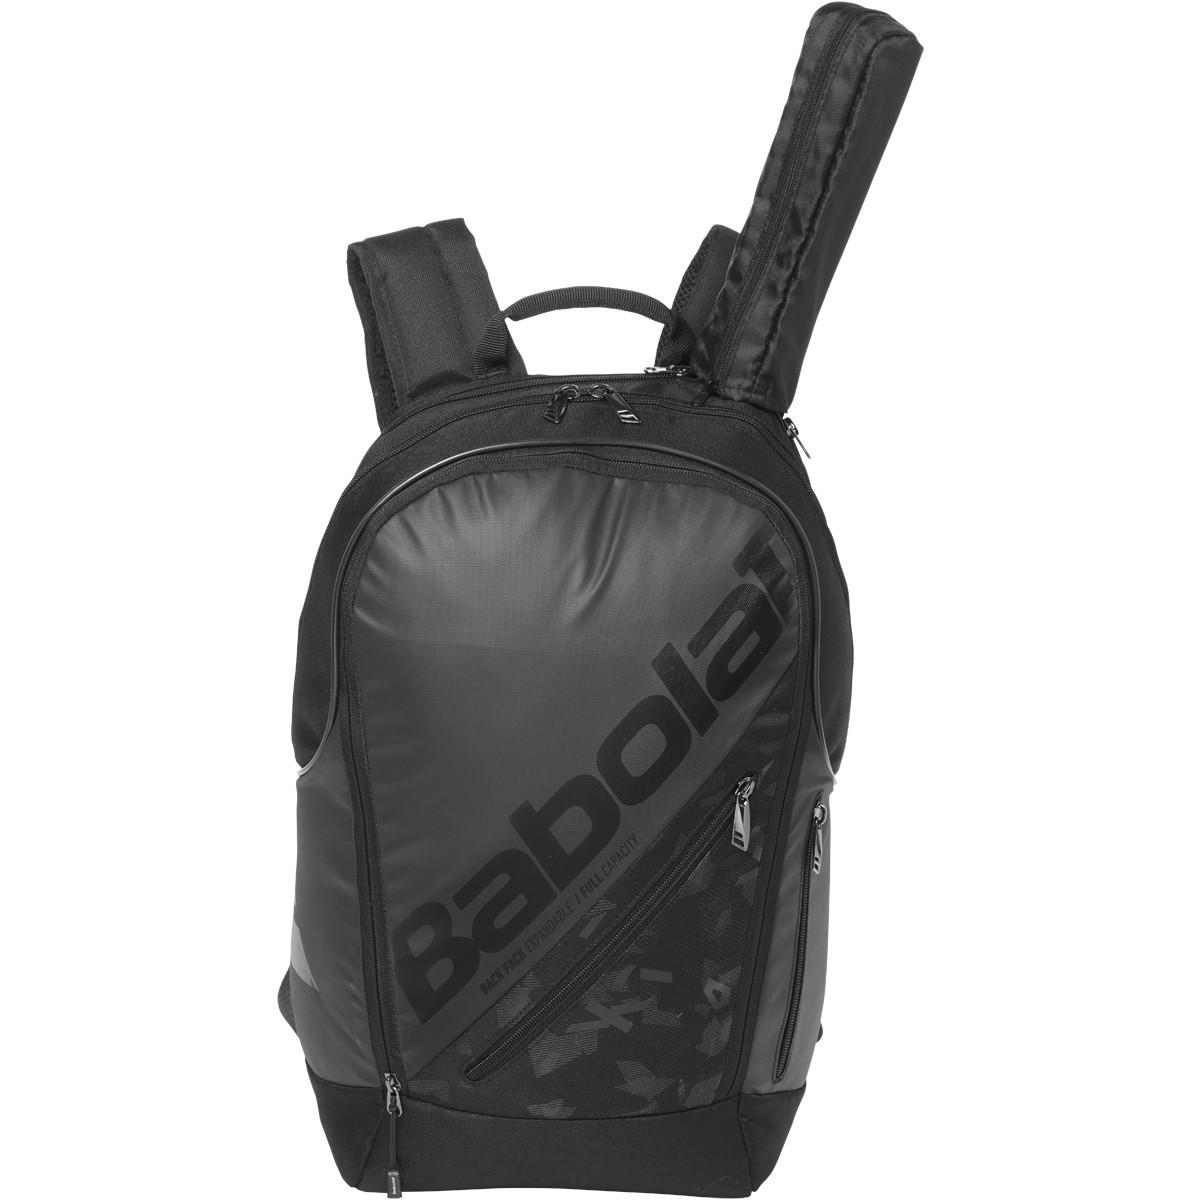 Теннисный рюкзак Babolat Team Line Backpack Expandable black